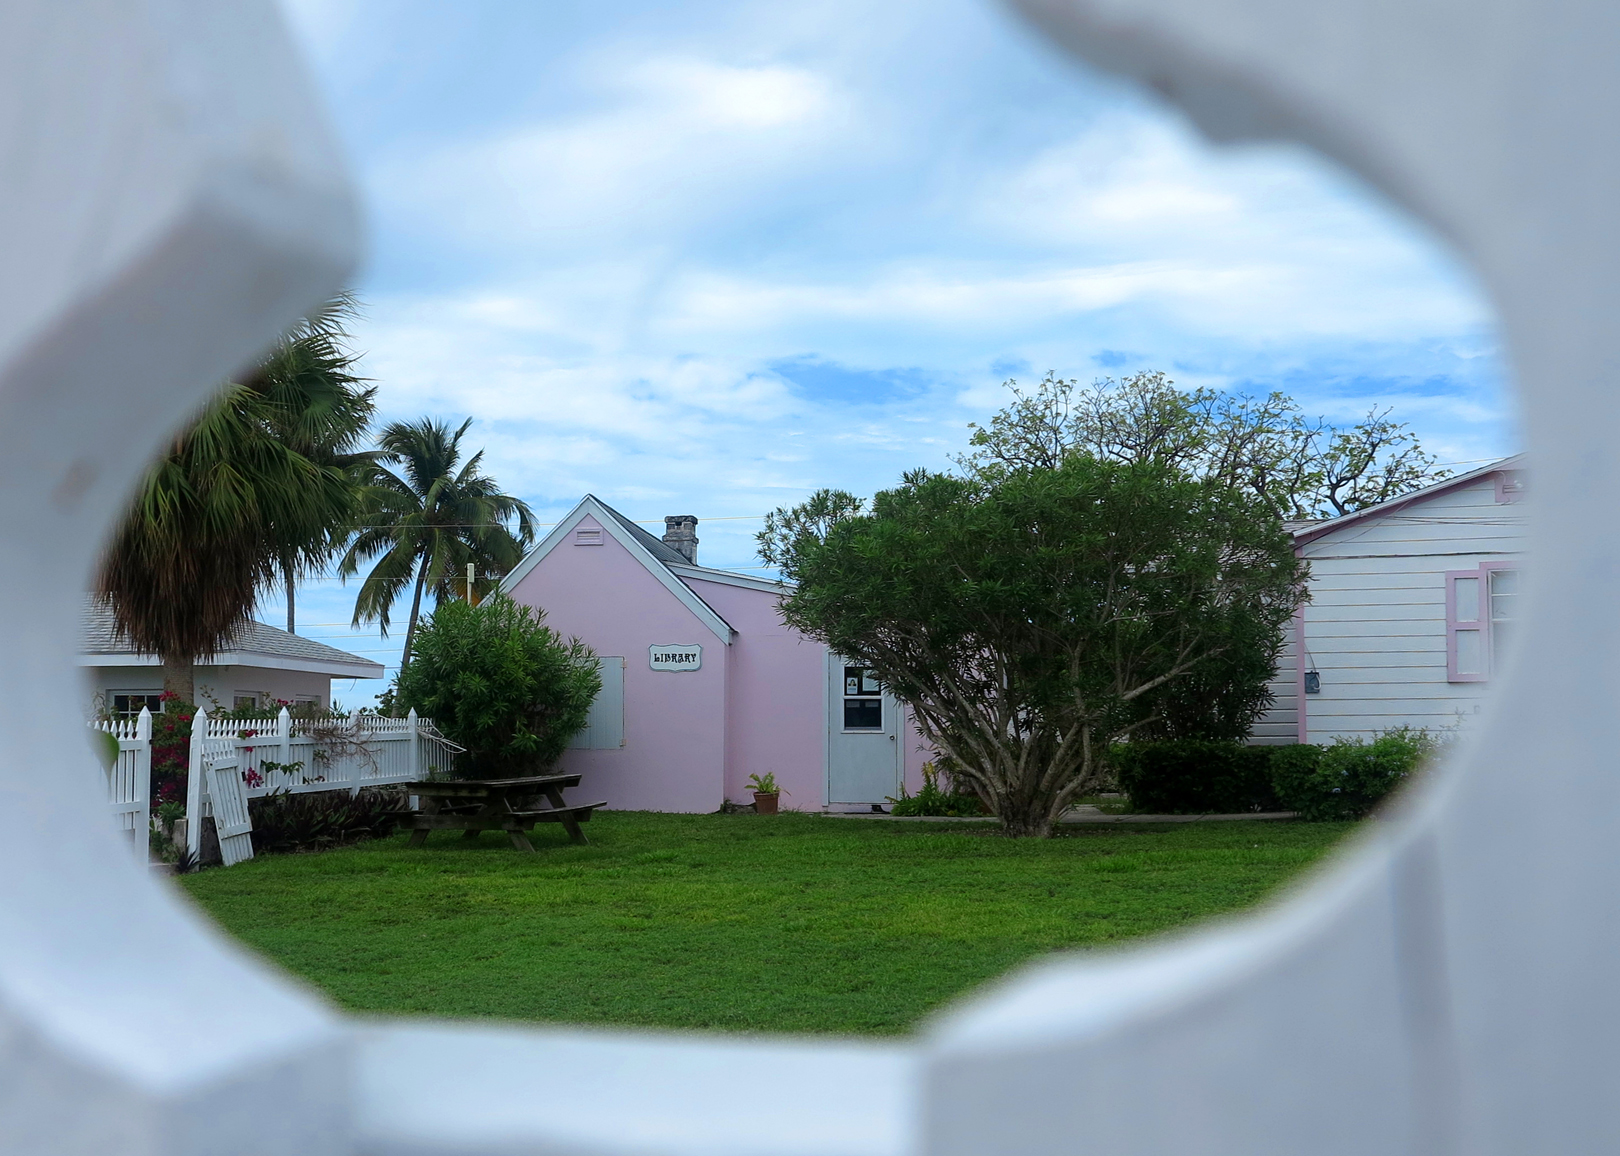 A Long Overdue Visit to Green Turtle Cay's Public Library